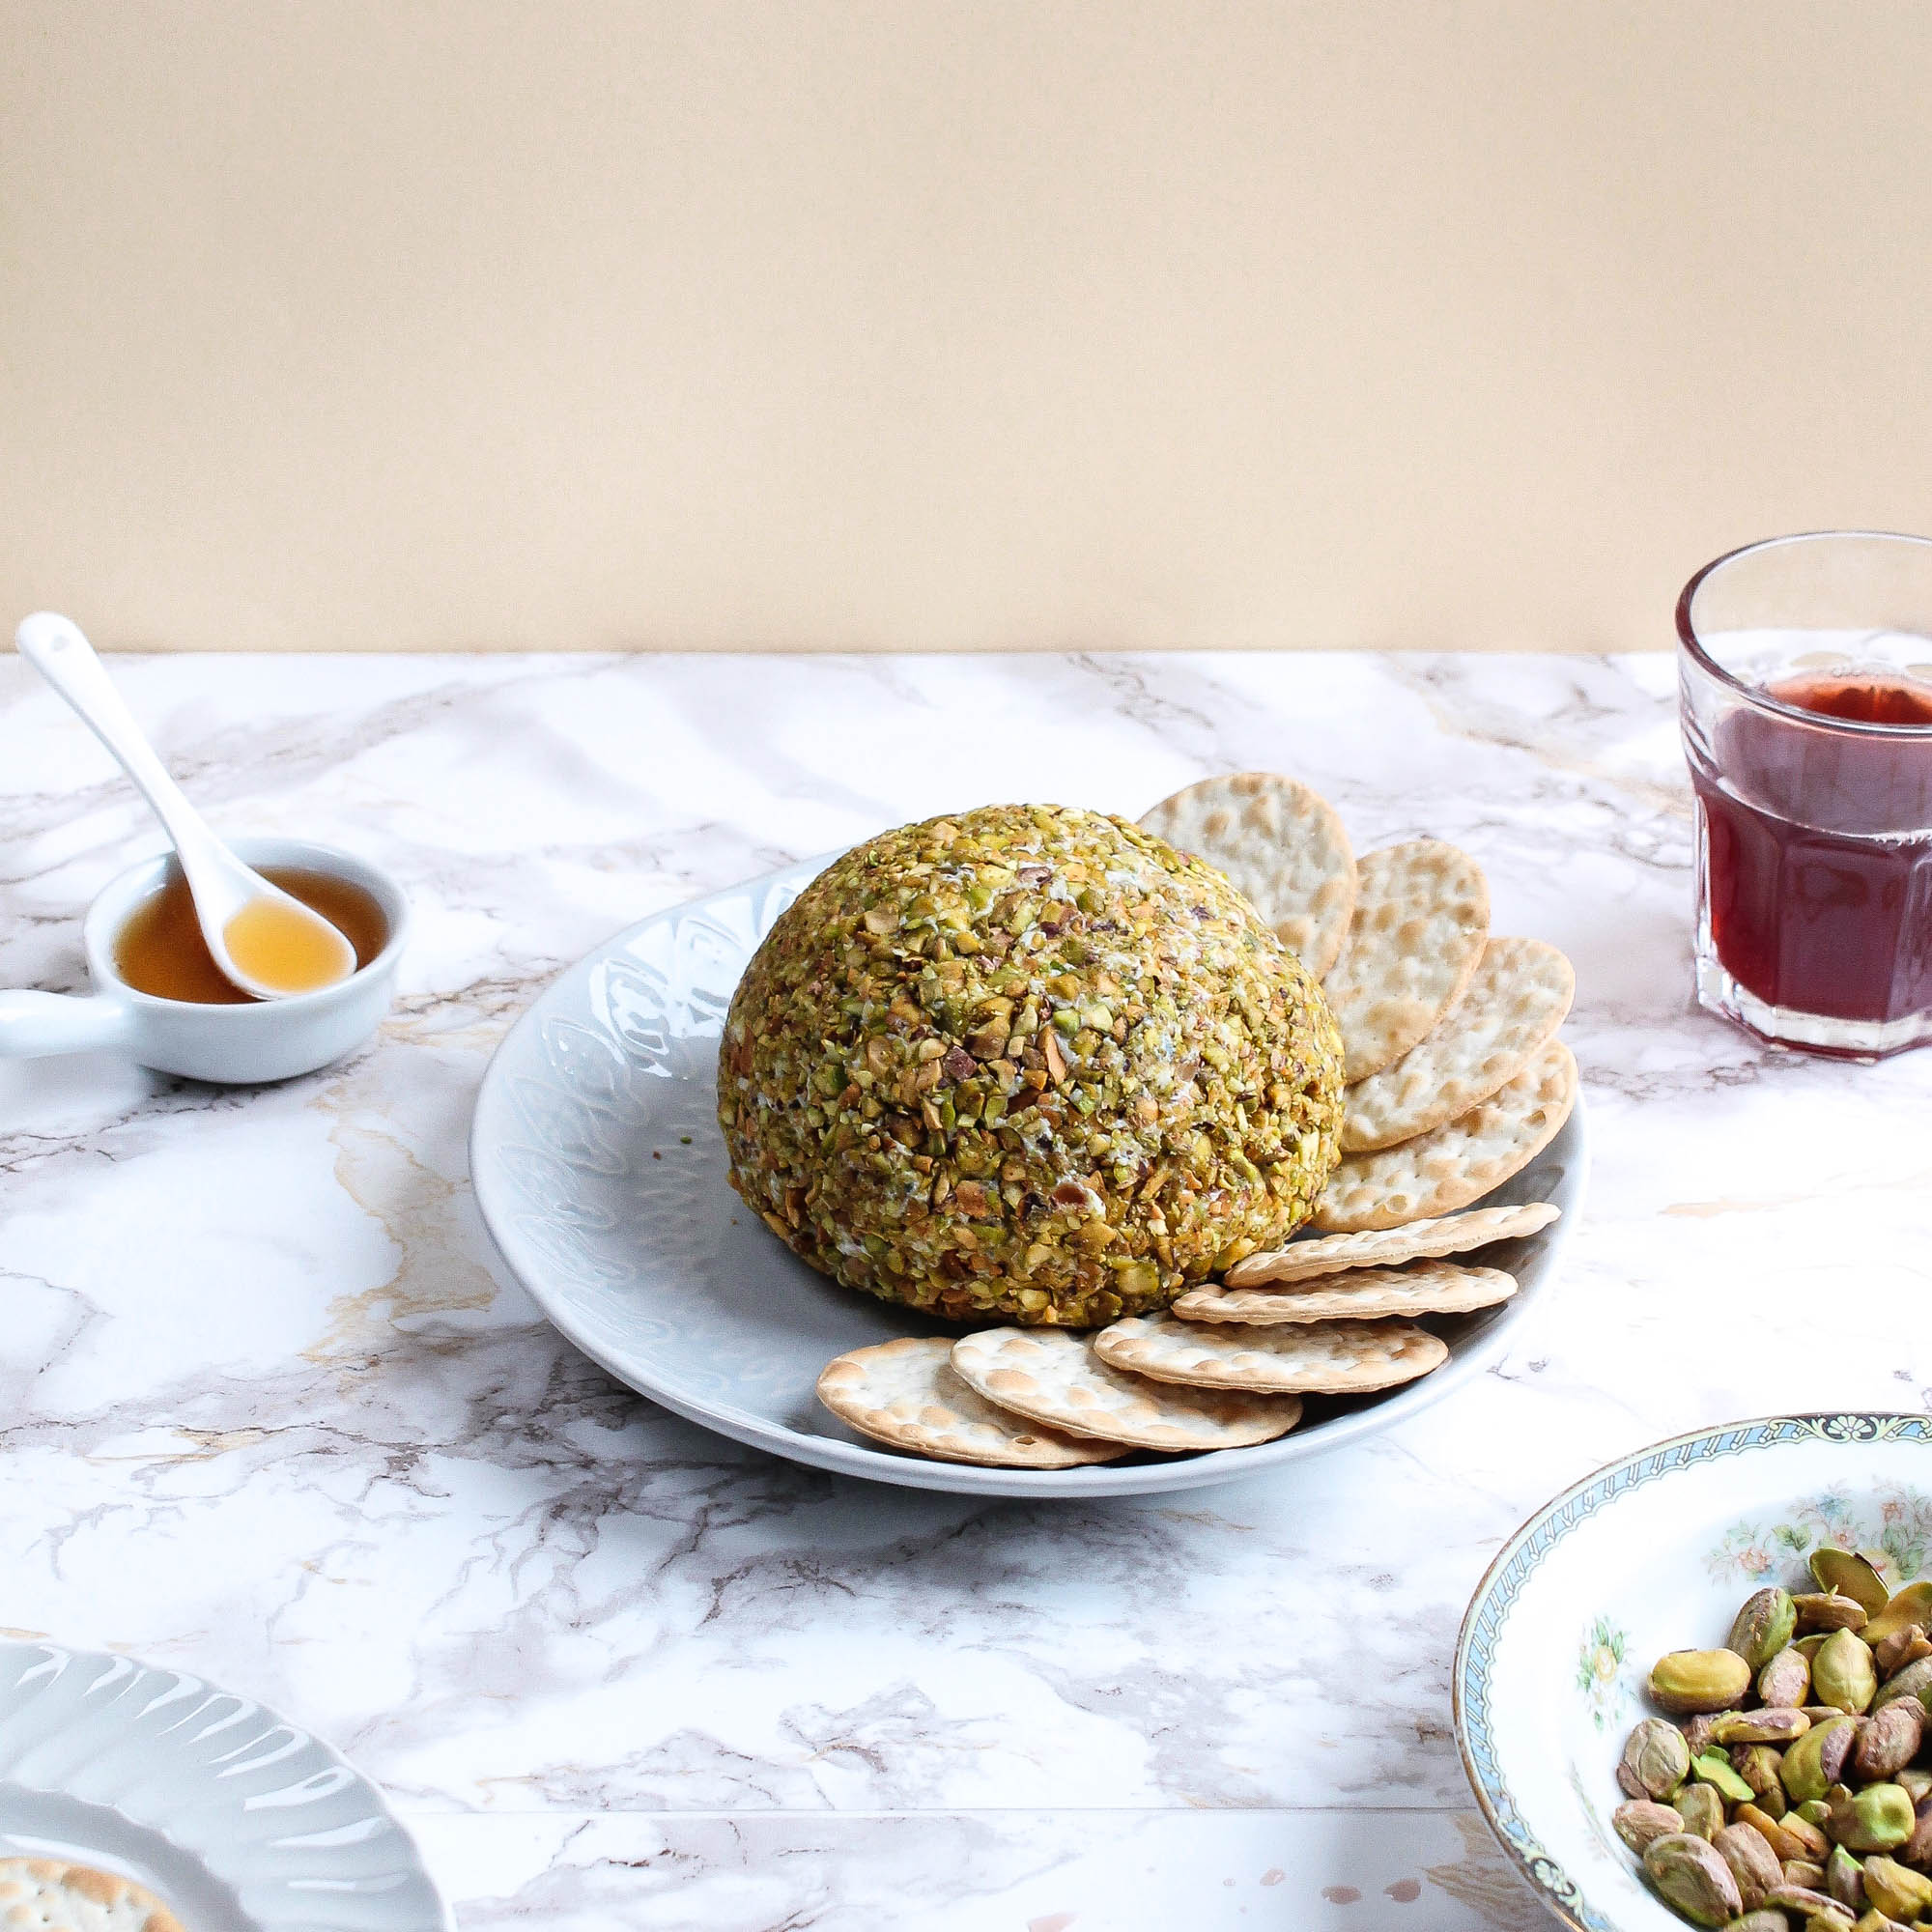 STILTON PEAR CHEESE BALL W/ PISTACHIOS + PINK PEPPERCORNS